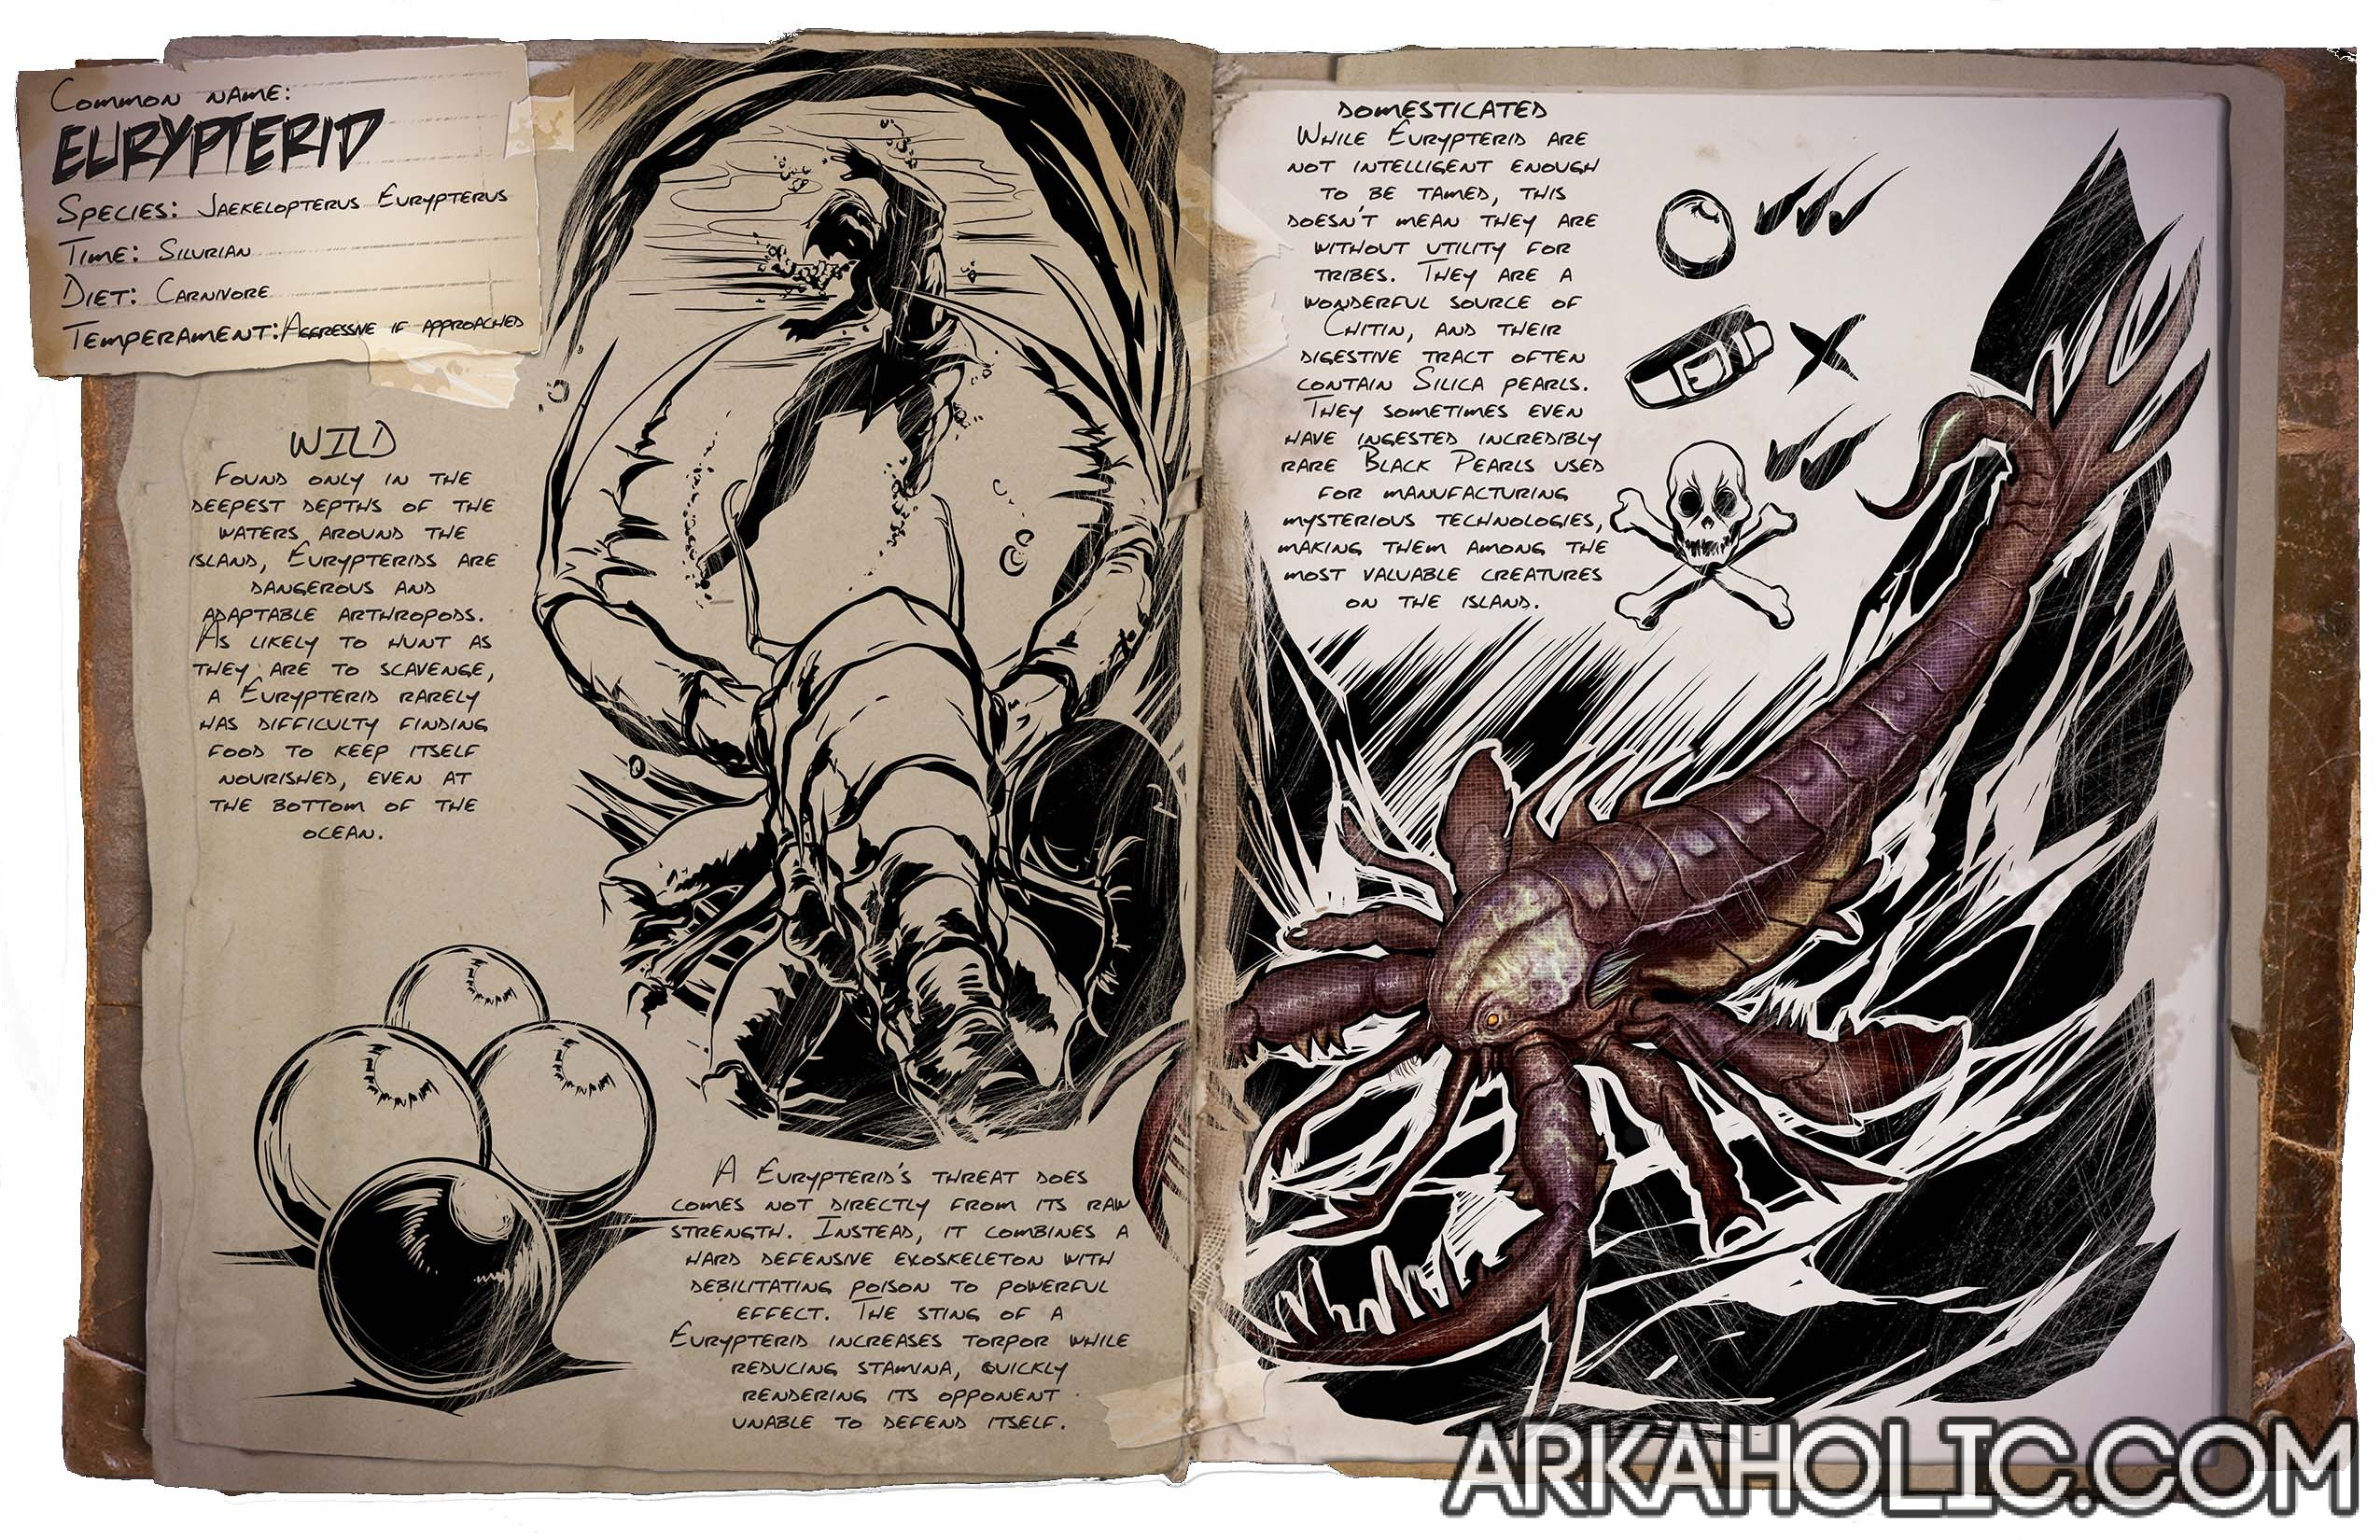 Eurypterid Dino Dossier Guide All content on this website (the site) is the property of arkcommands.com. arkaholic